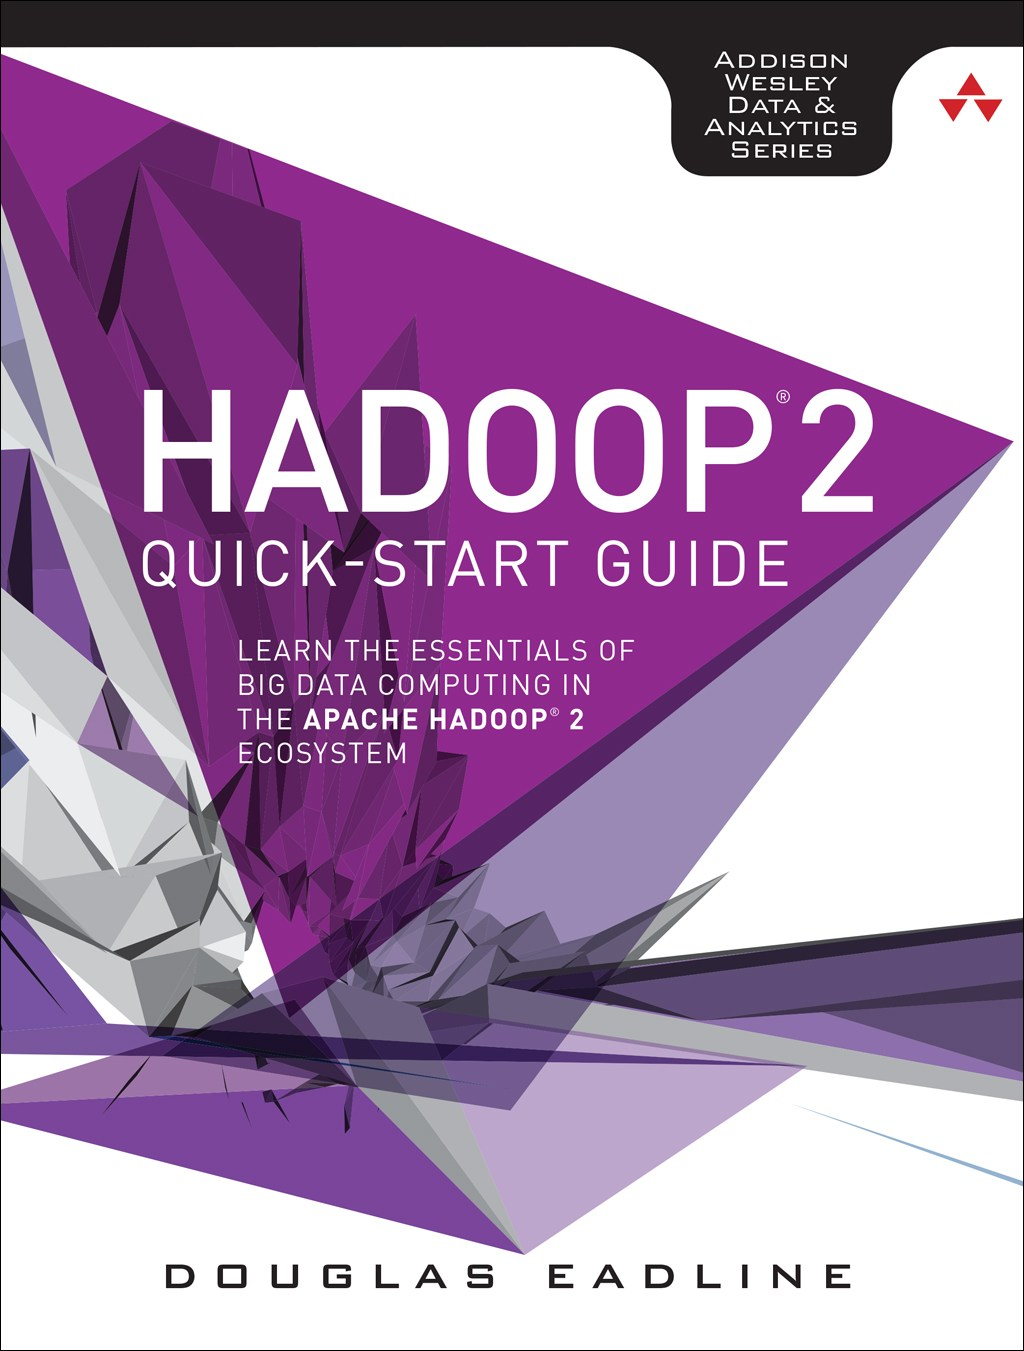 Hadoop 2 Quick-Start Guide: Learn the Essential Aspects of Big Data Computing in the Apache Hadoop 2 Ecosystem